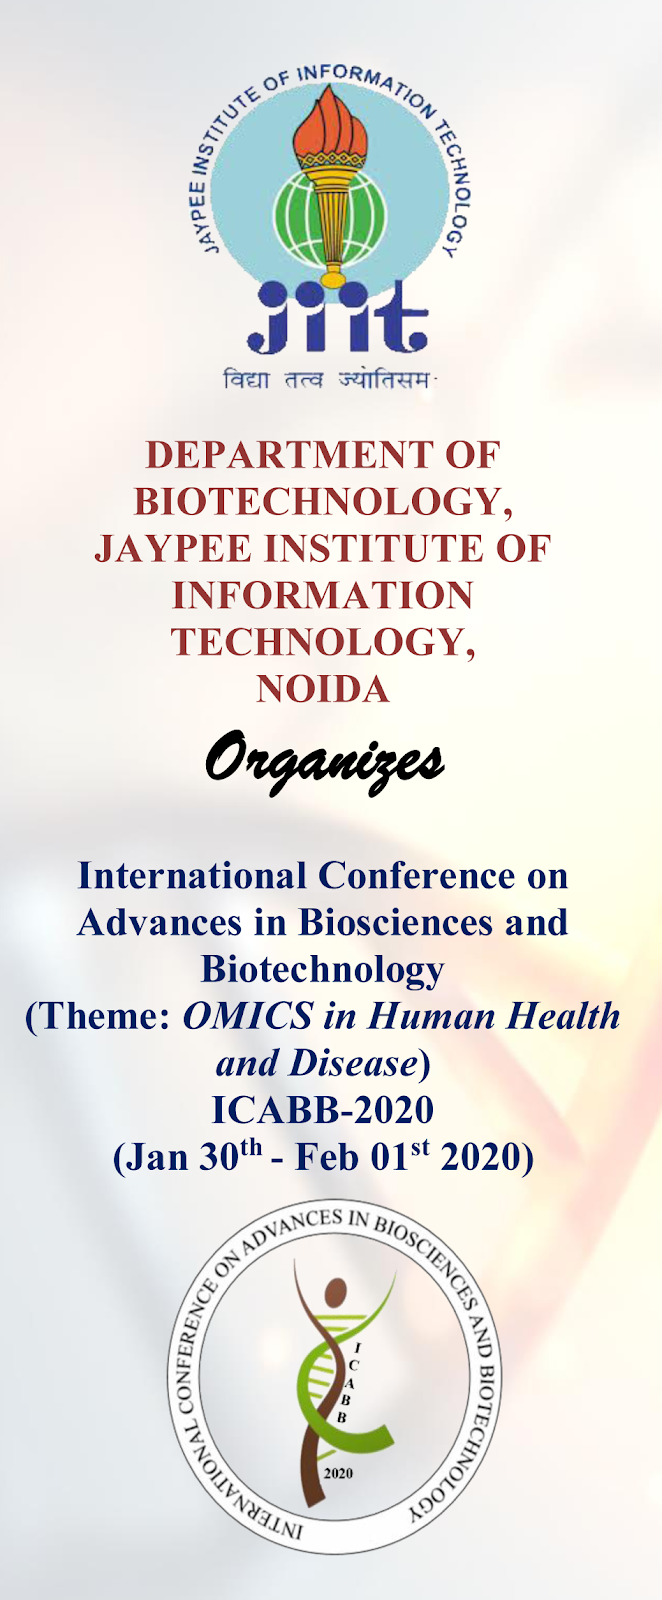 INTERNATIONAL CONFERENCE on ADVANCES IN BIOSCIENCES & BIOTECHNOLOGY 2020 | Jan 30-Feb 01, 2020